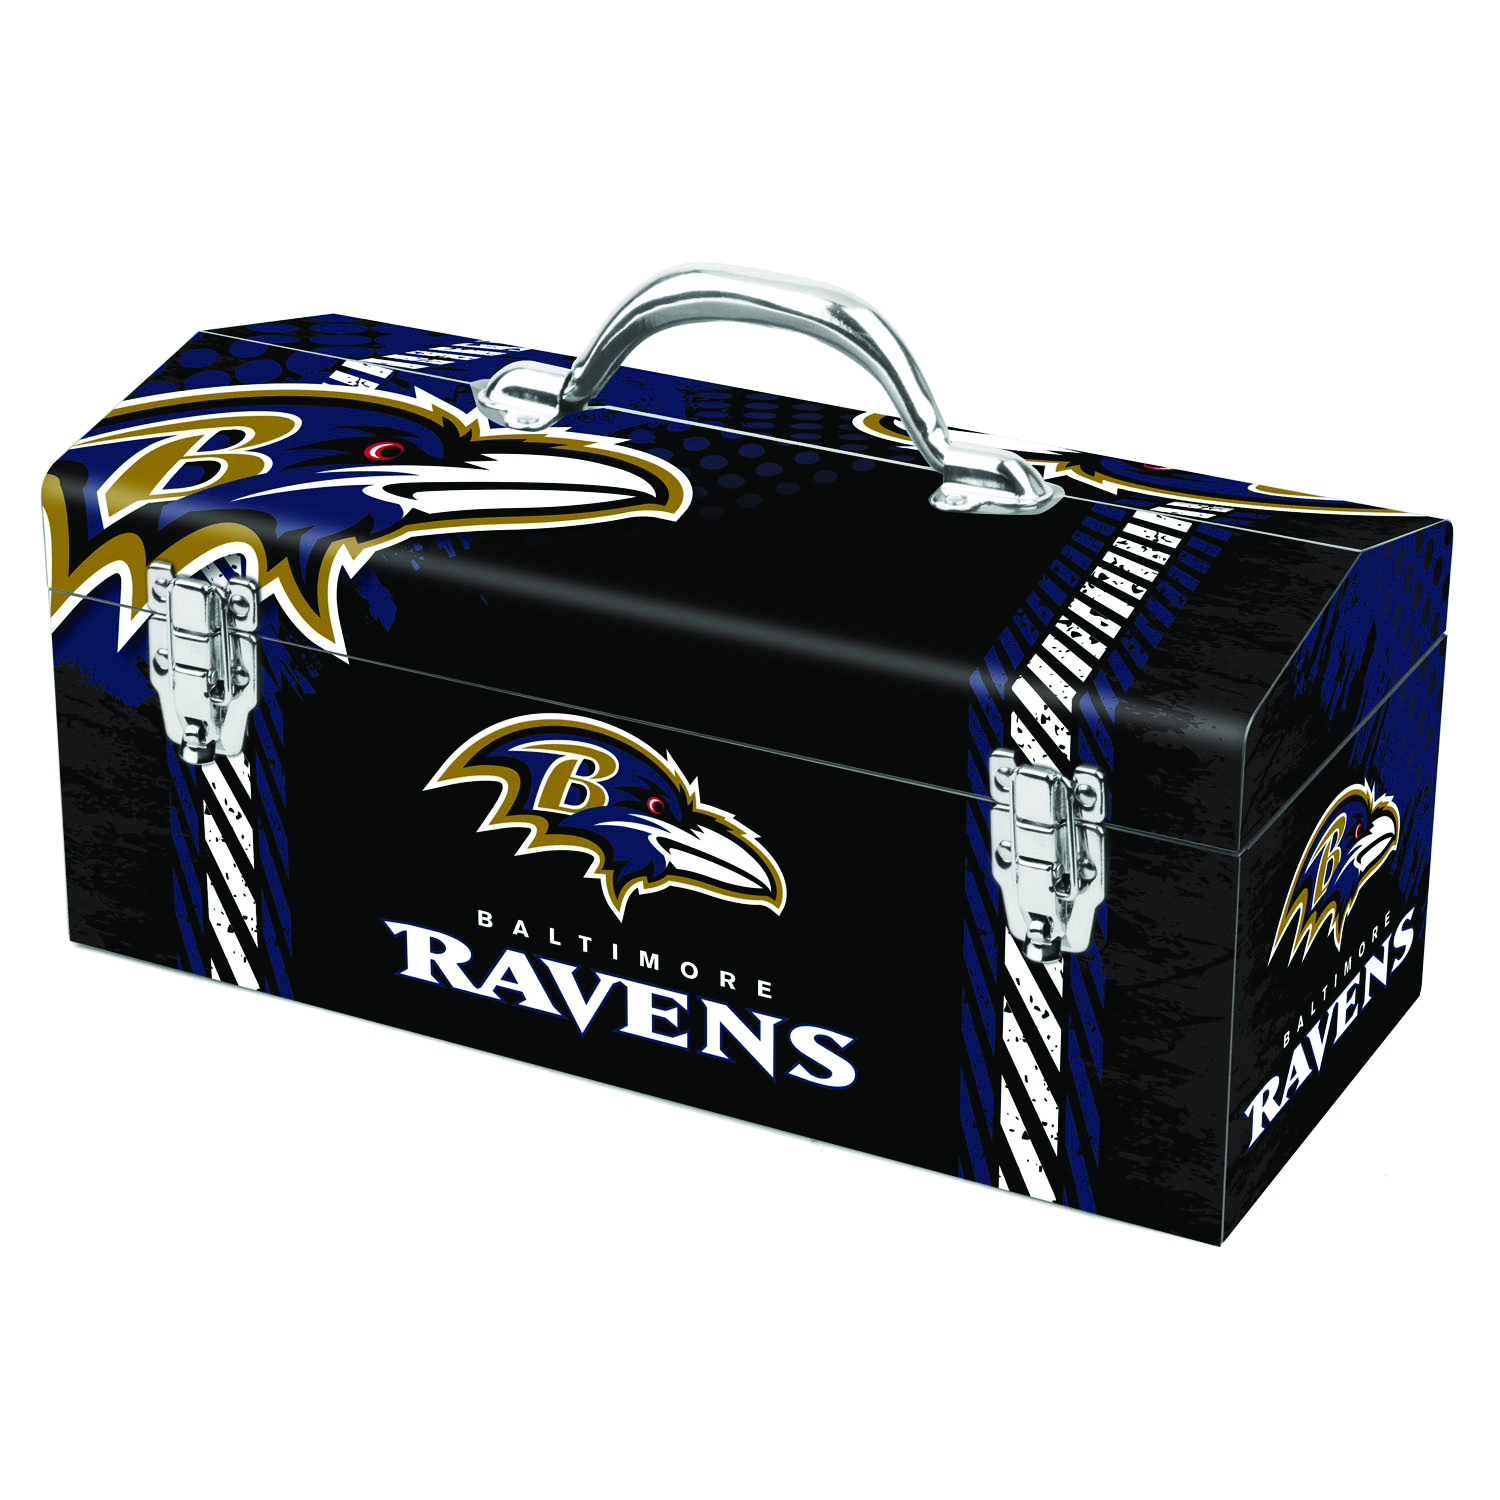 Sainty International  Baltimore Ravens  Steel  Baltimore Ravens  Art Deco Tool Box  7.75 in. H x 7.1